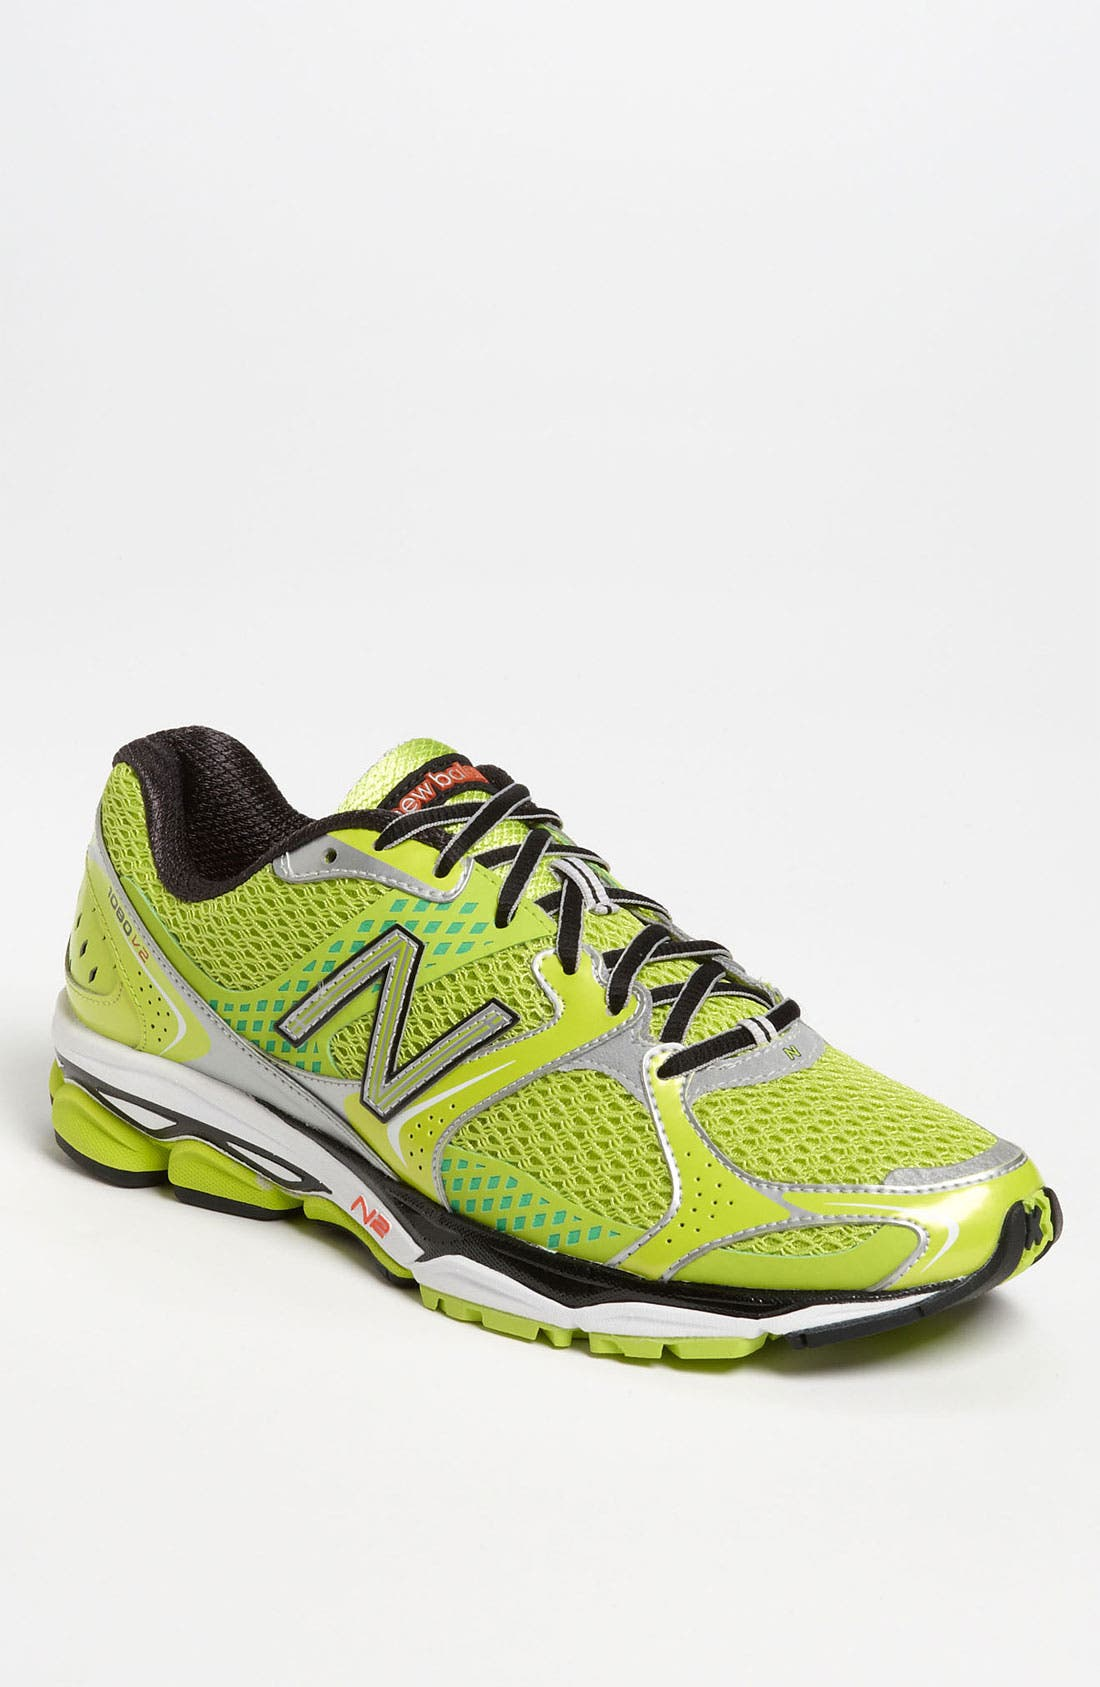 Main Image - New Balance '1080' Running Shoe (Men)